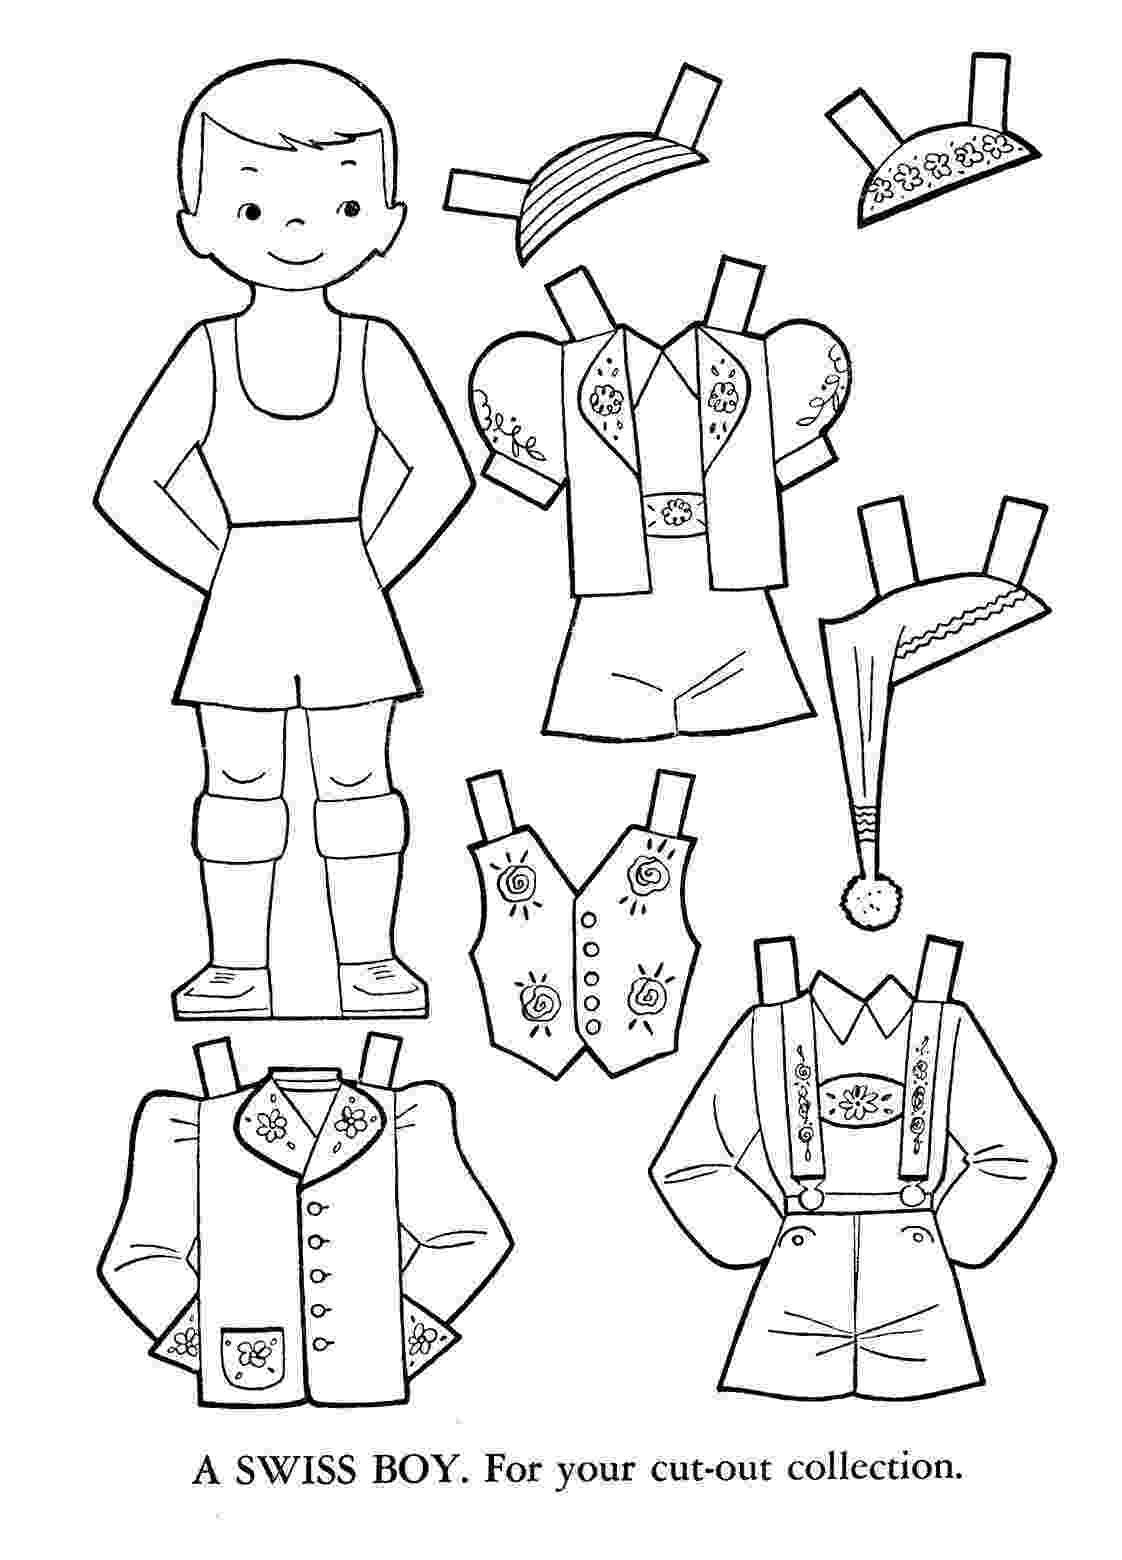 paper dress up dolls printable outlines of dress up dolls different colountries paper printable paper dress up dolls